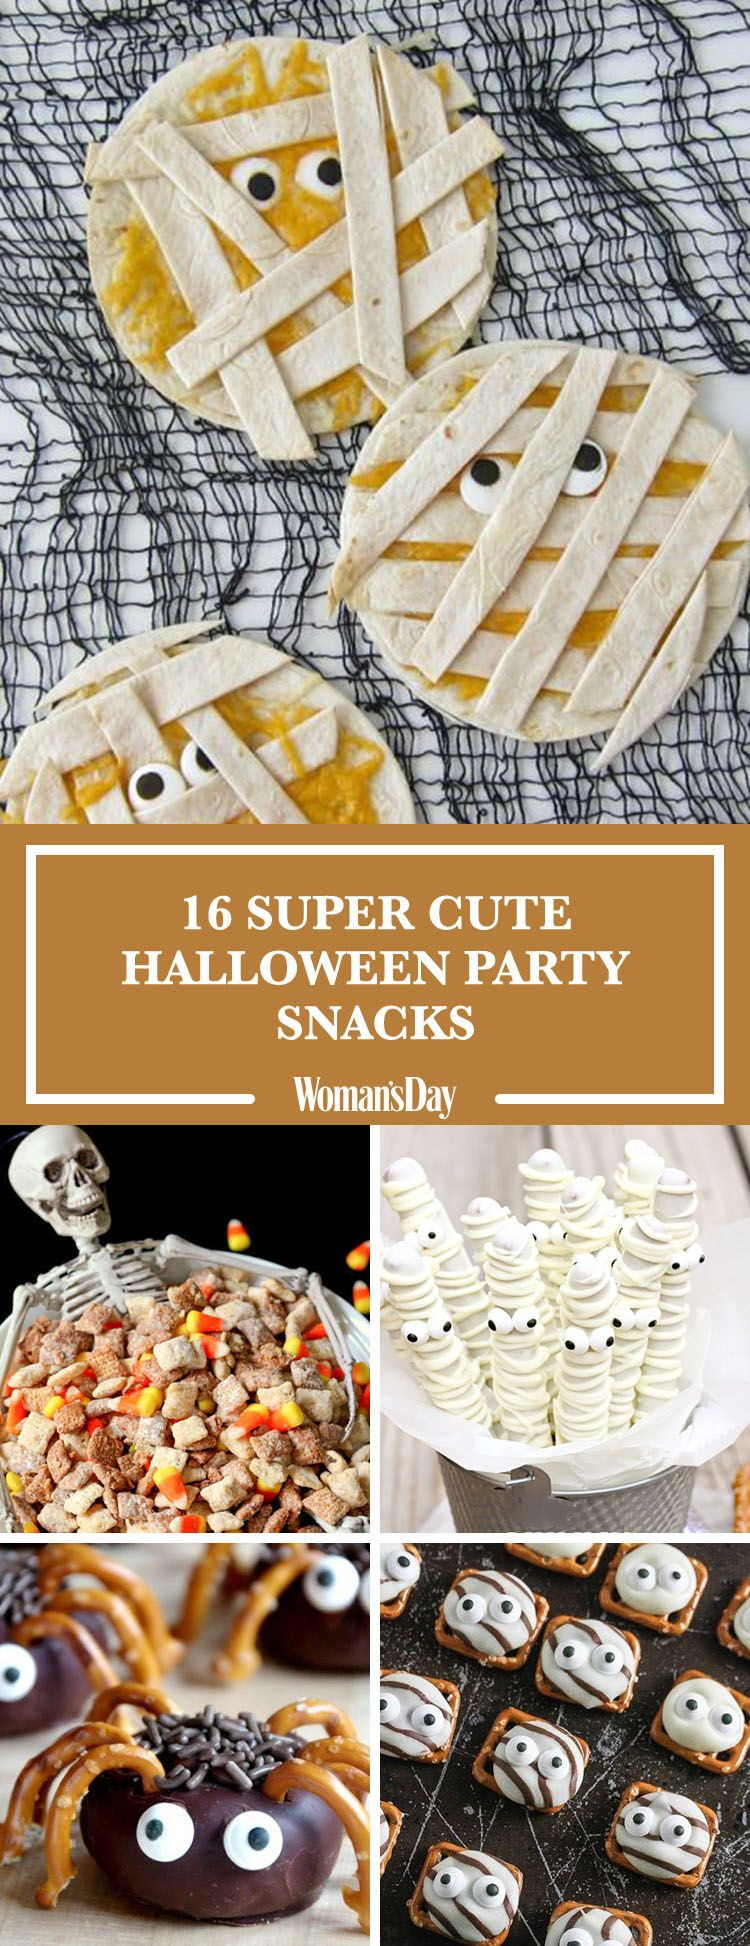 25 Easy Halloween Party Snacks — Ideas and Recipes for Halloween ...